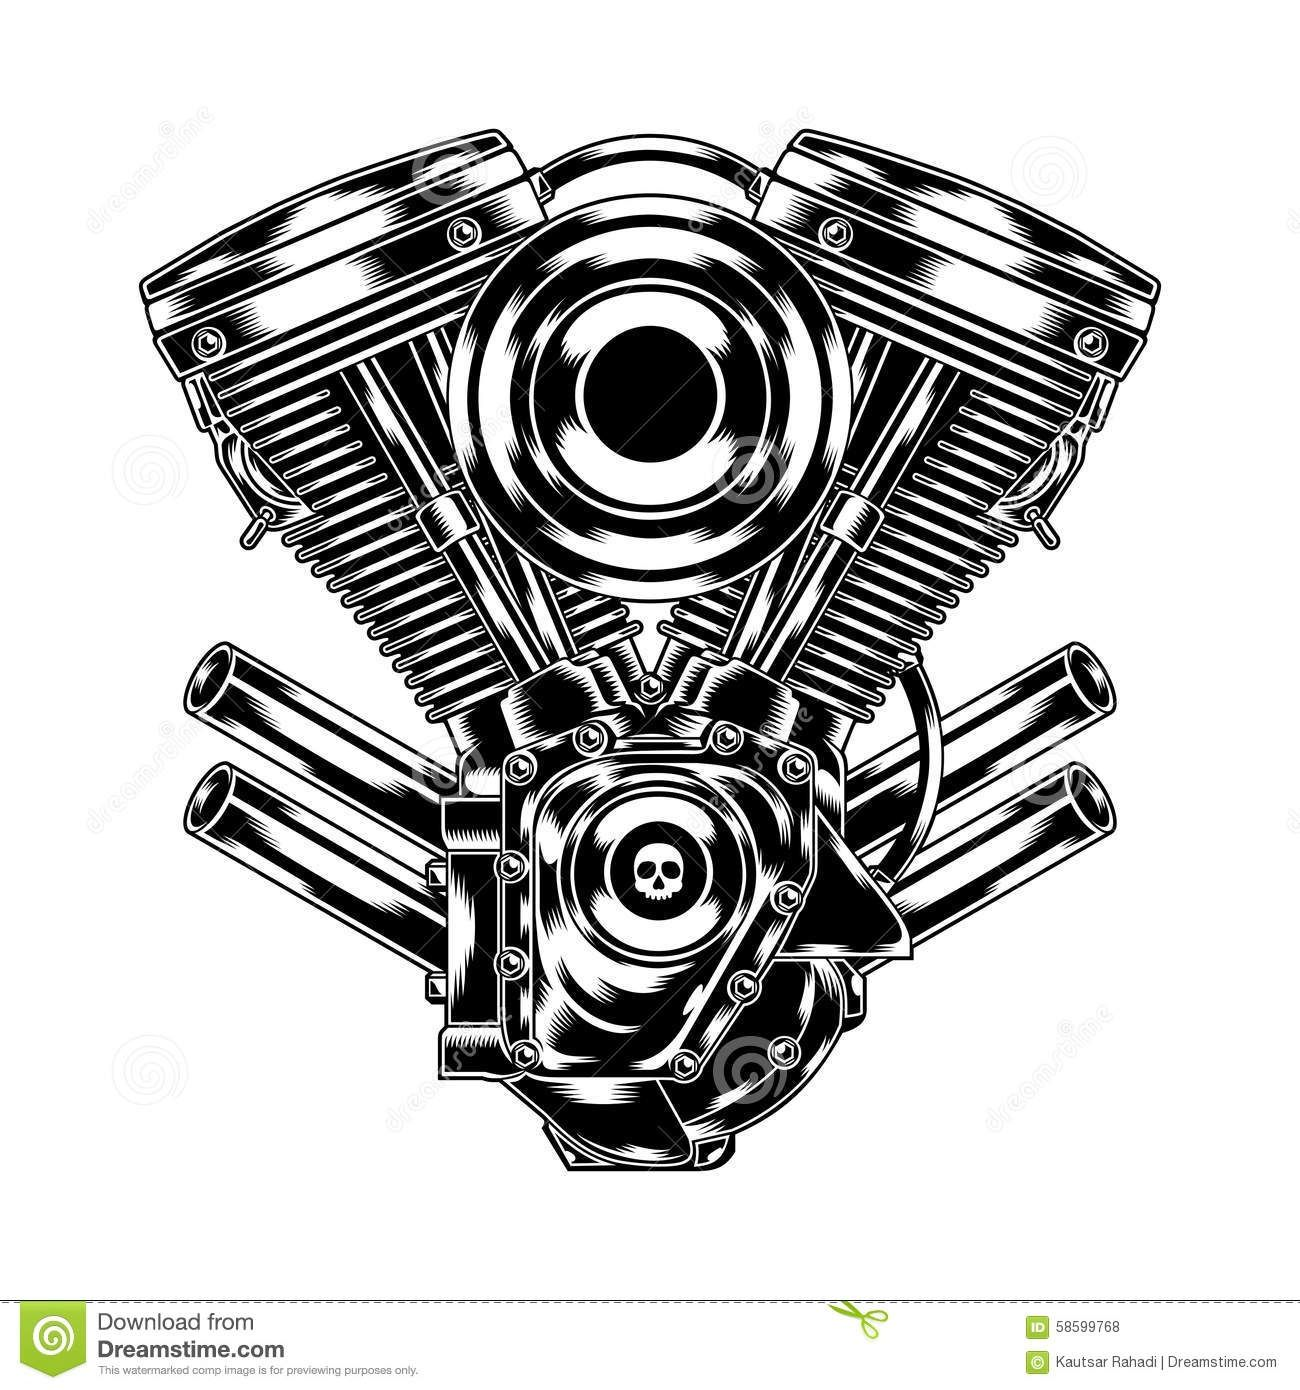 Engine Clipart Motorcycle 10